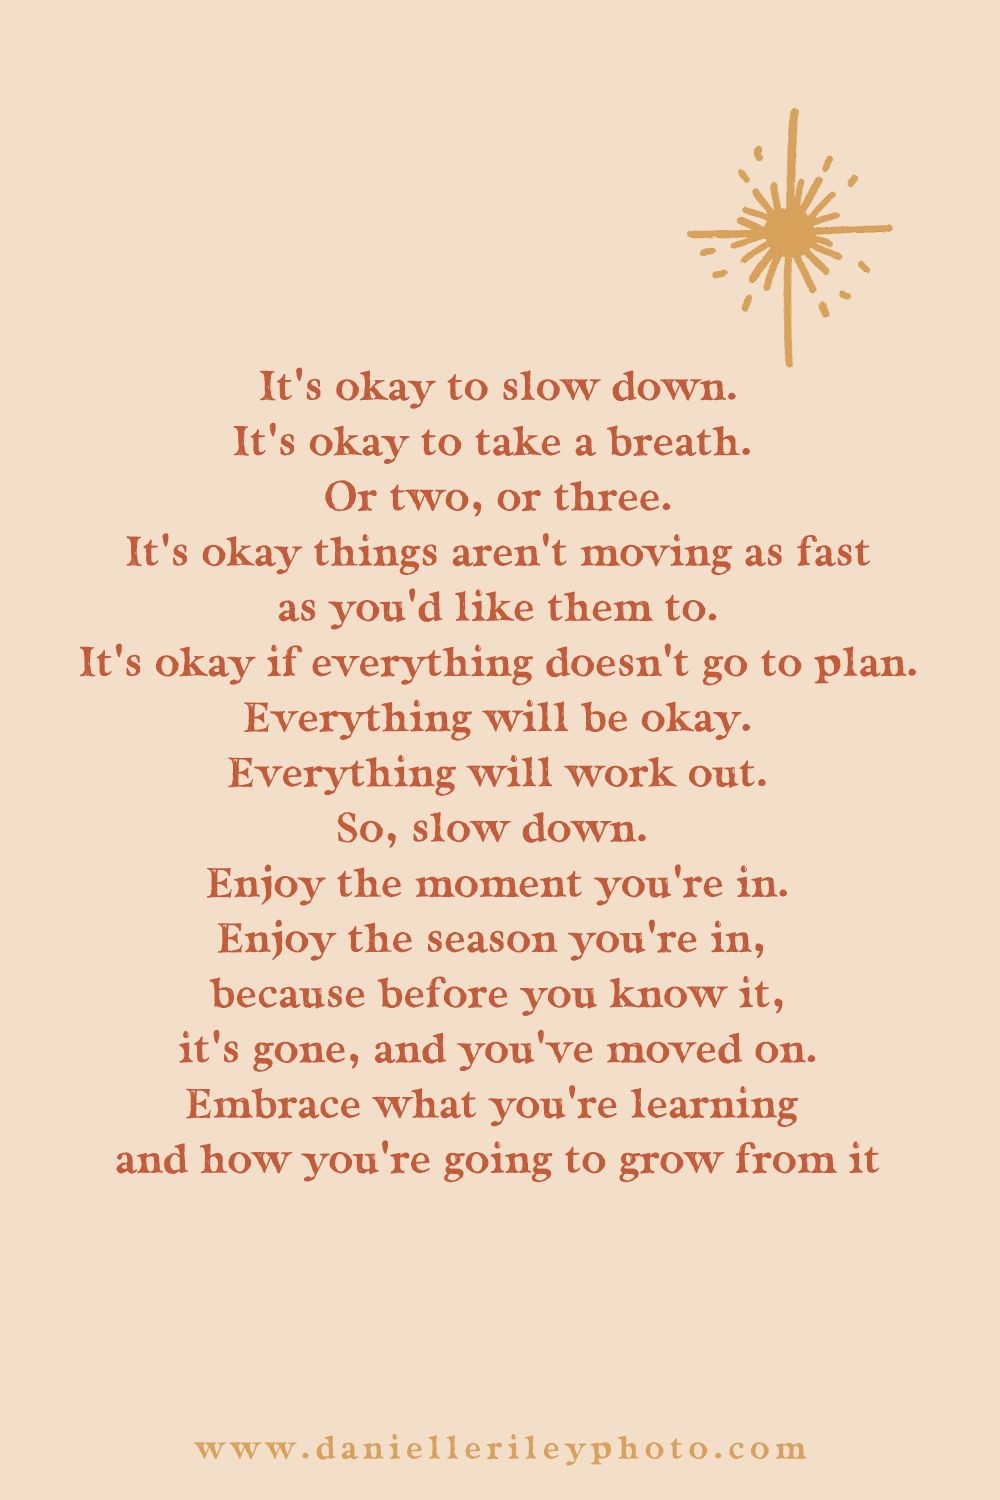 30 Sayings And Quotes About Time Passing Too Quickly Words Quotes Words Time Quotes